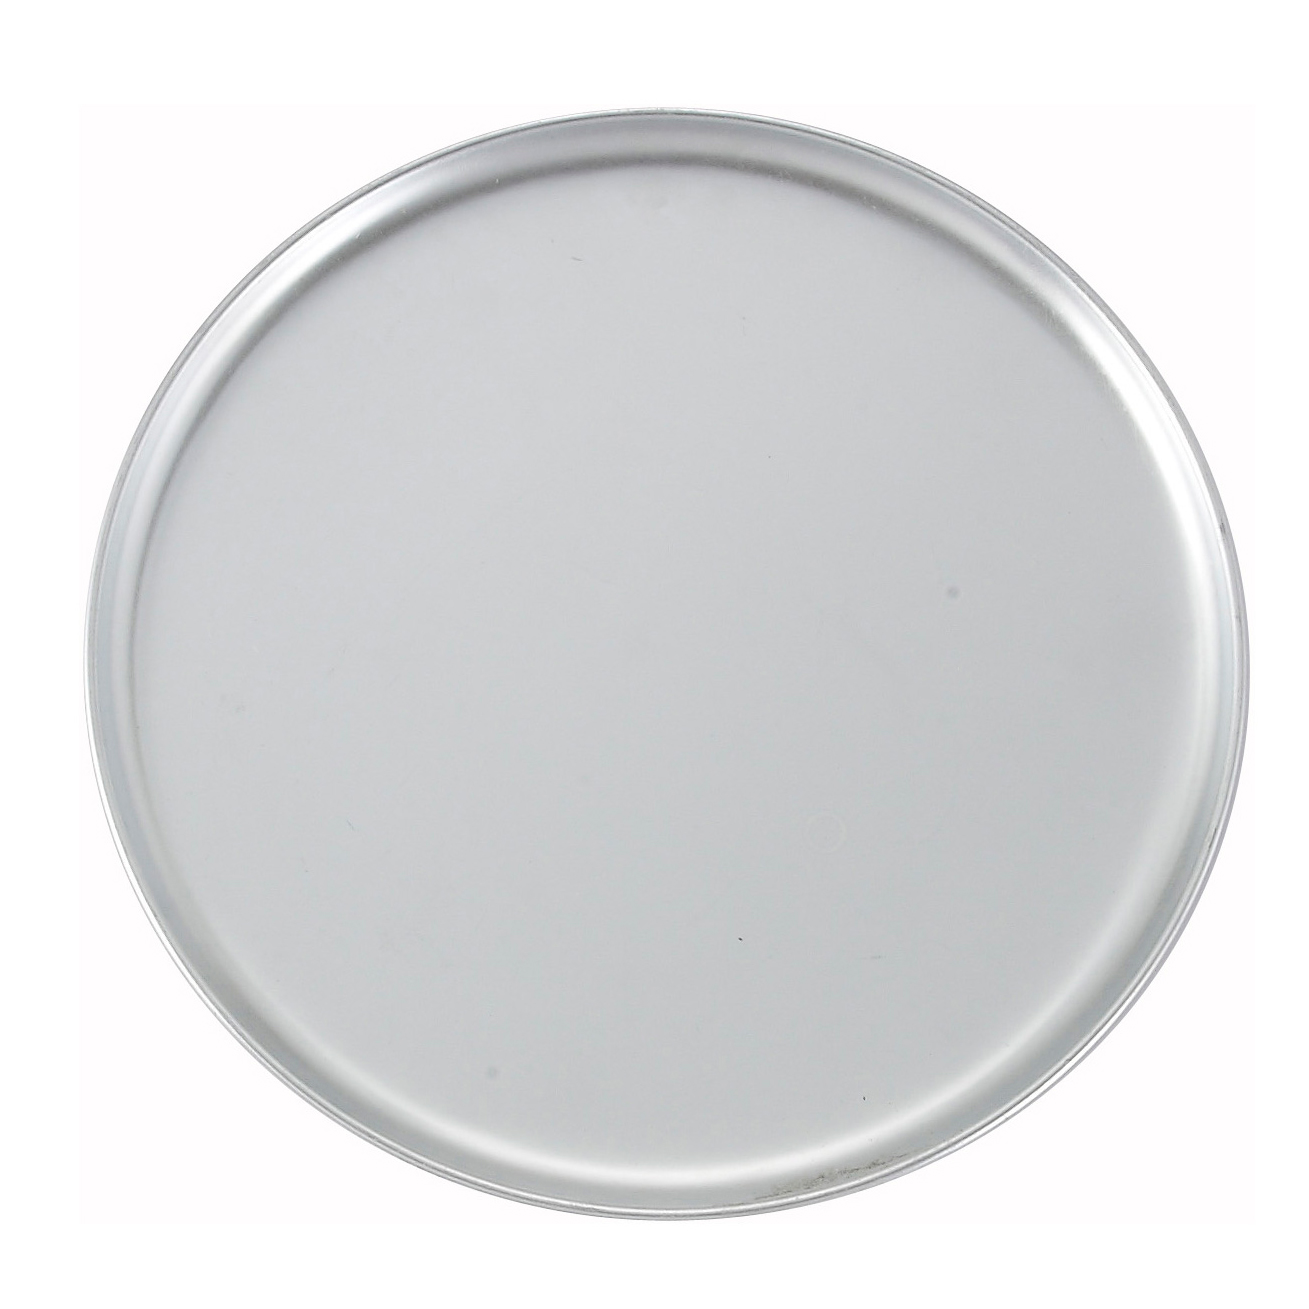 Winco APZC-13 pizza pan